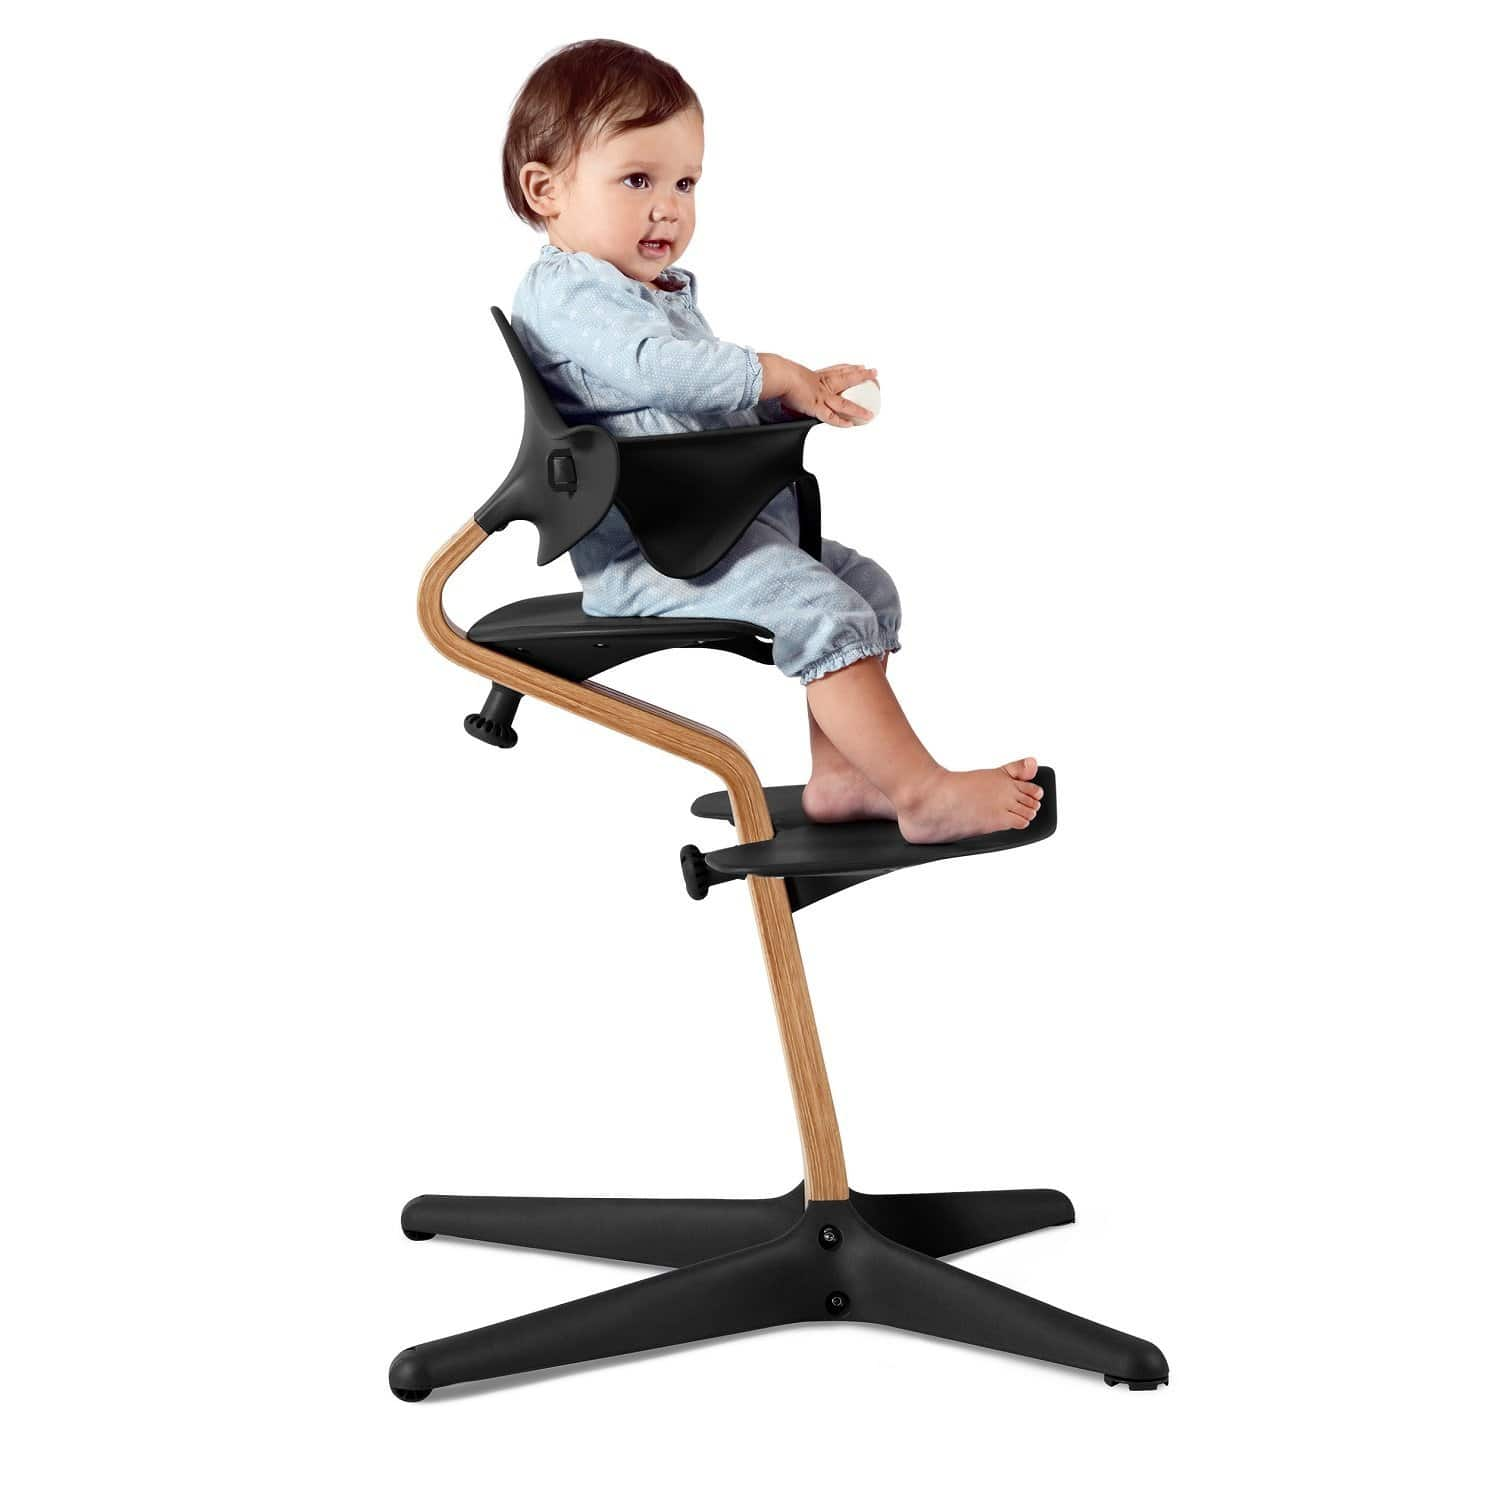 Nomi Nomi High Chair Harness